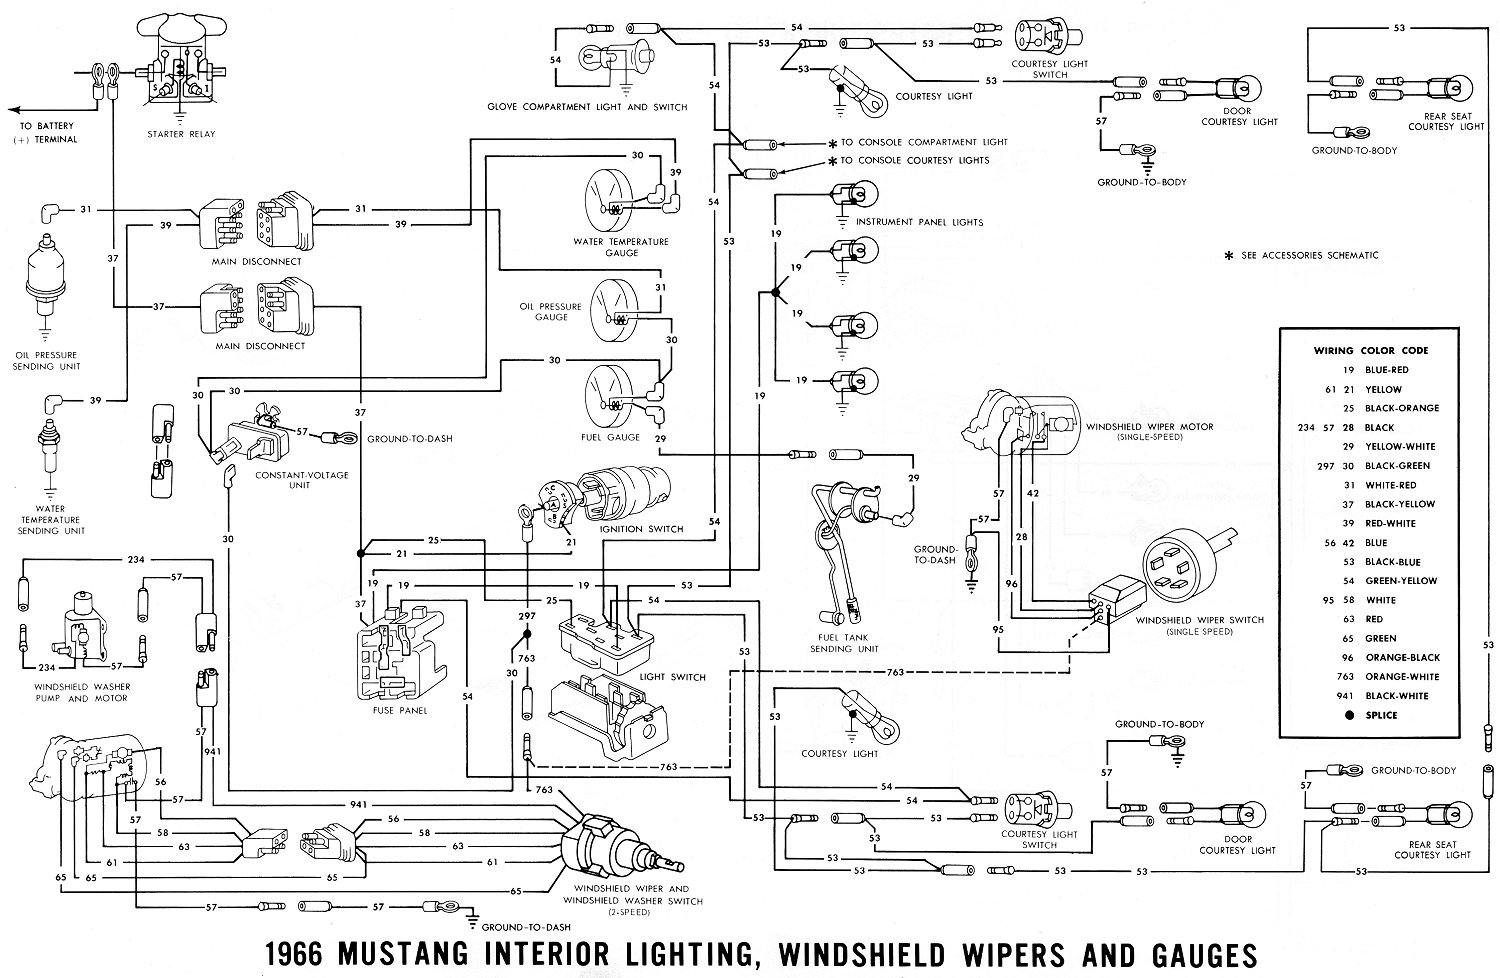 66inter1 1966 mustang wiring diagram 1966 mustang ignition wiring diagram 1965 ford mustang wiring diagrams at crackthecode.co